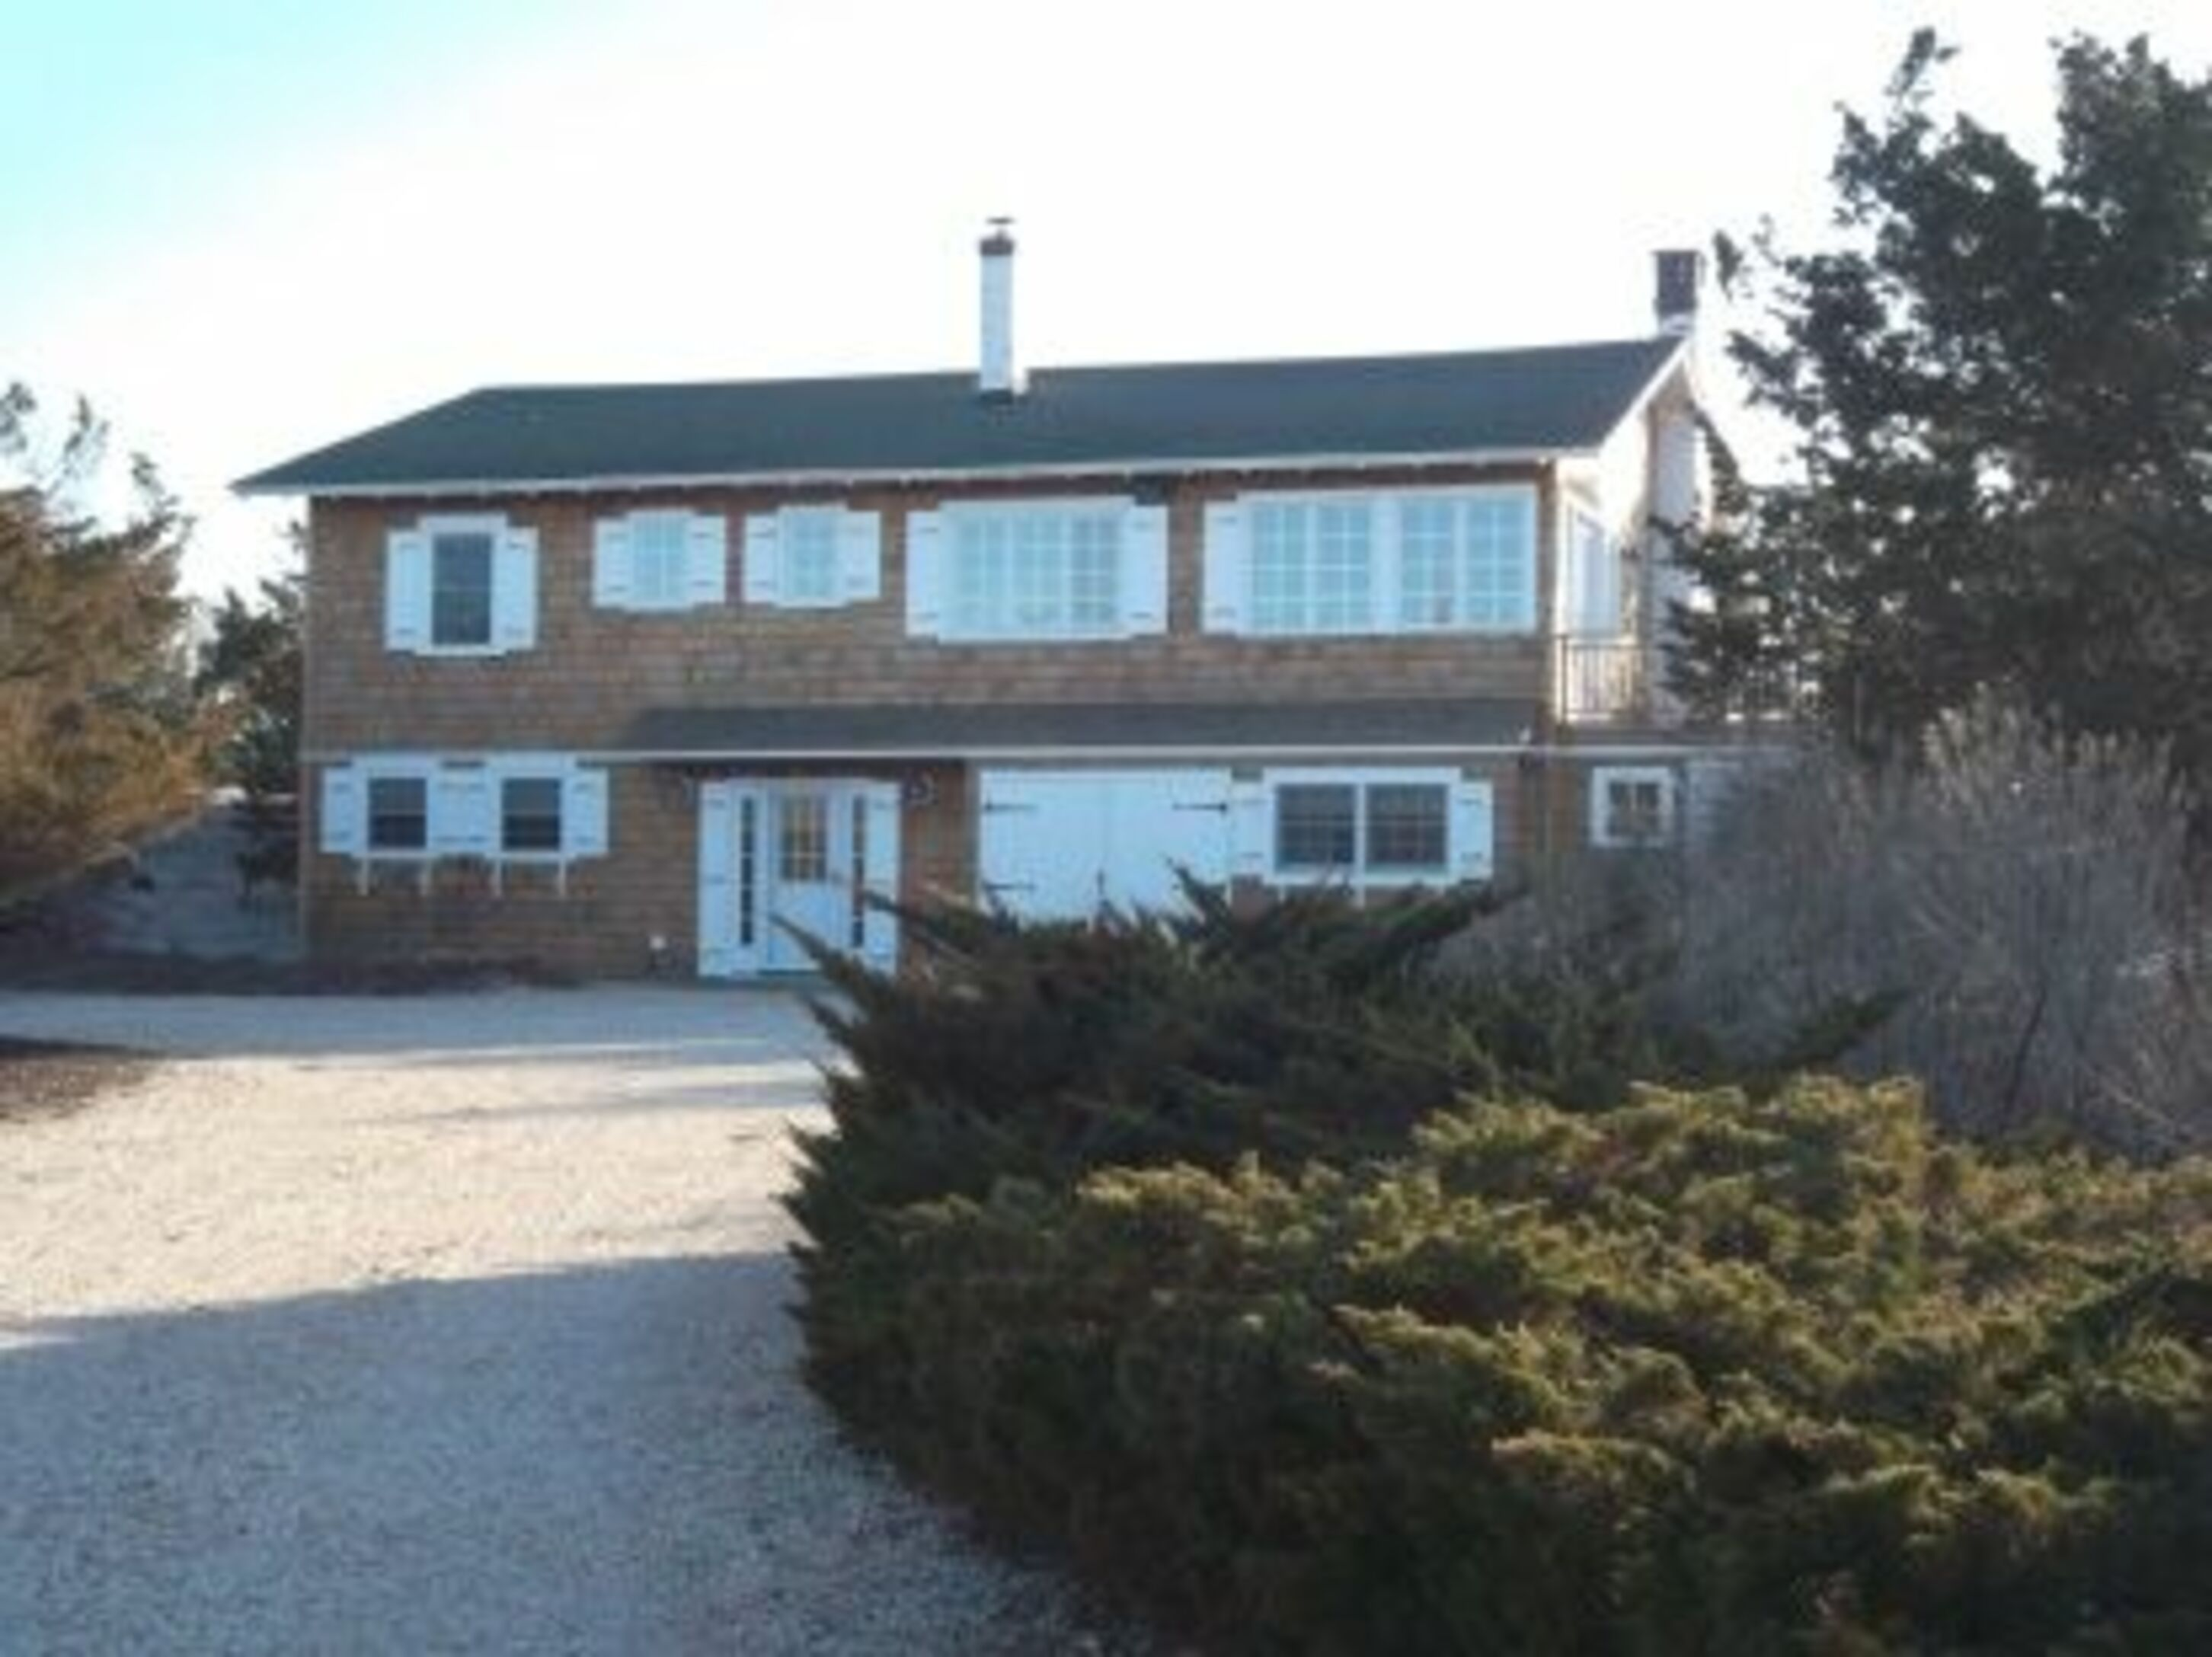 196 Dune Rd - Quogue South, New York